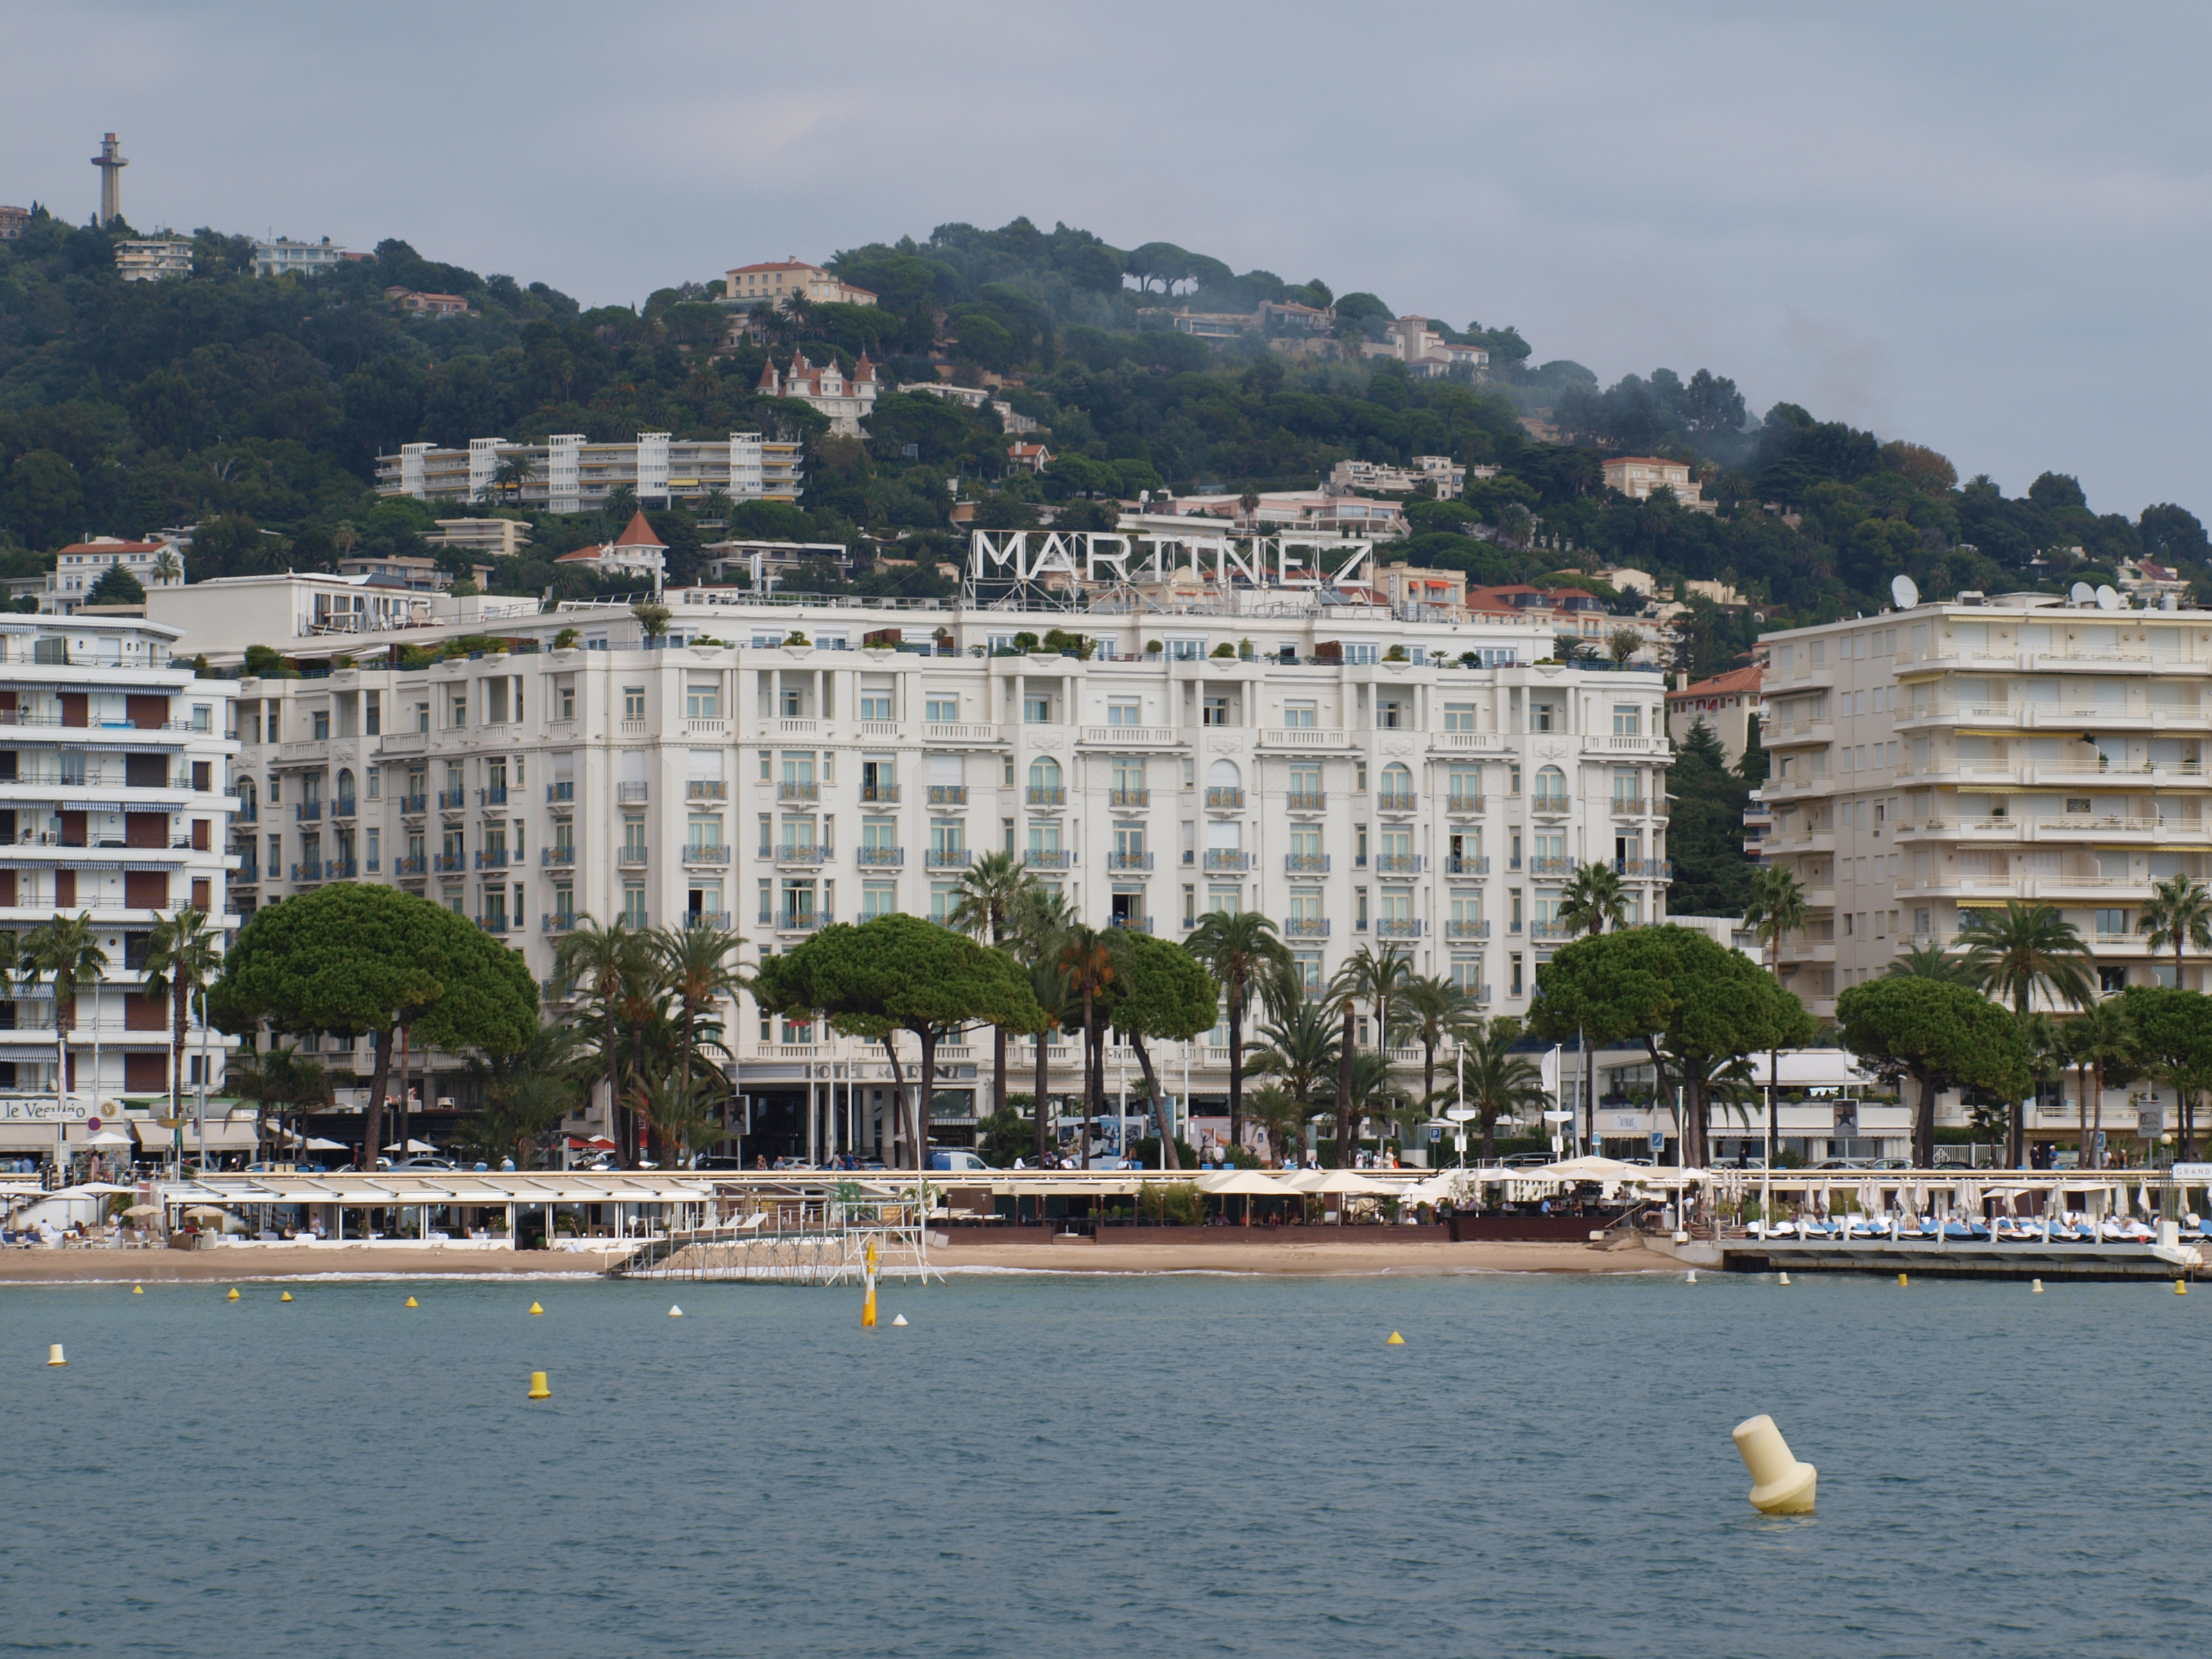 Rencontre amicale cannes